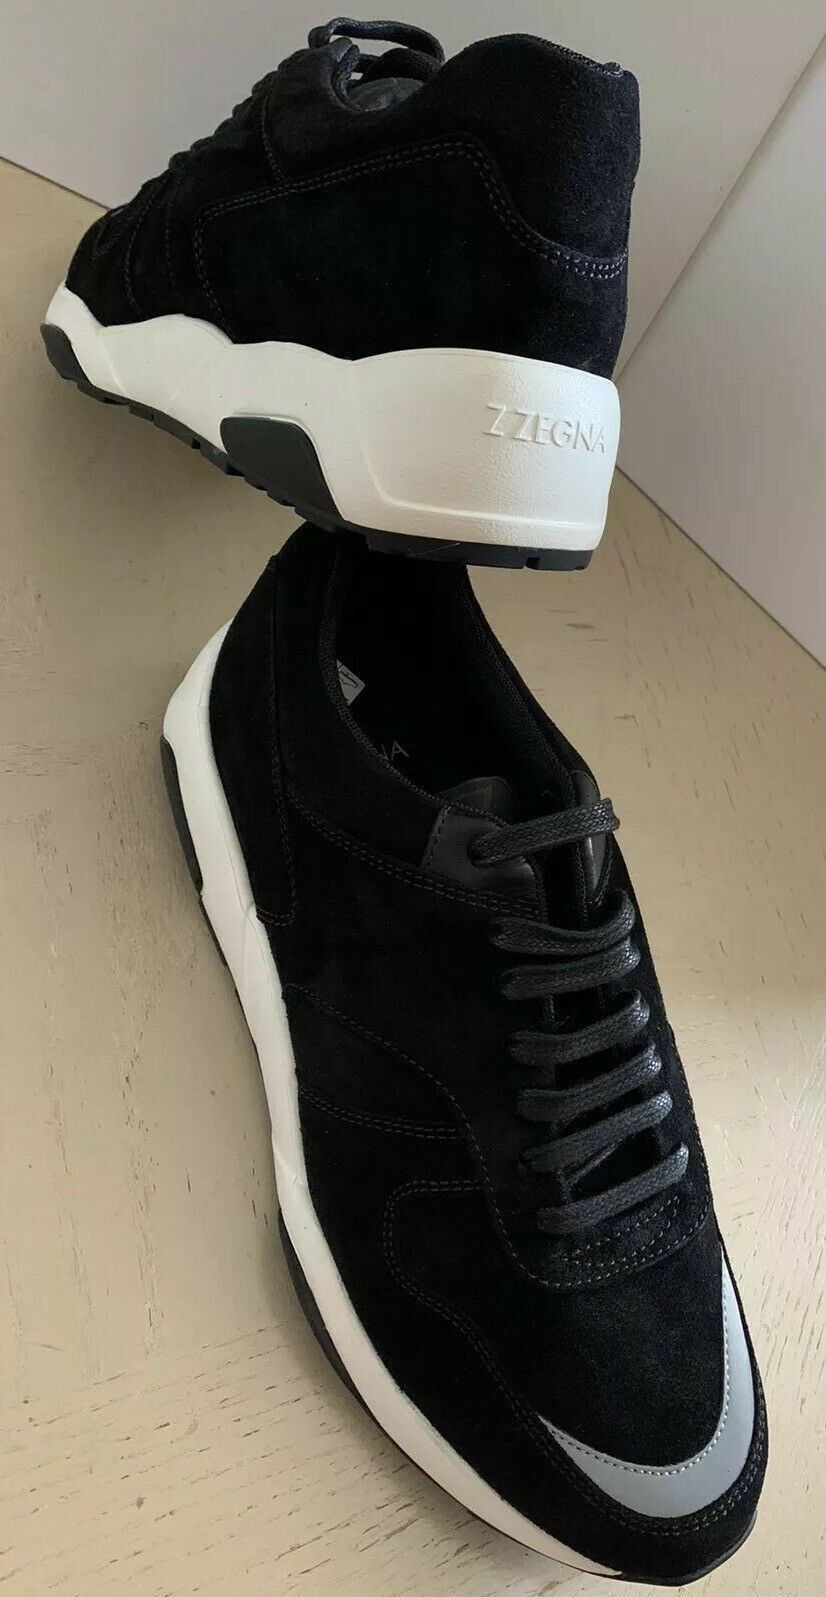 NIB $595 Z Zegna Men's Leather/Suede Sneakers Black 9 US Italy